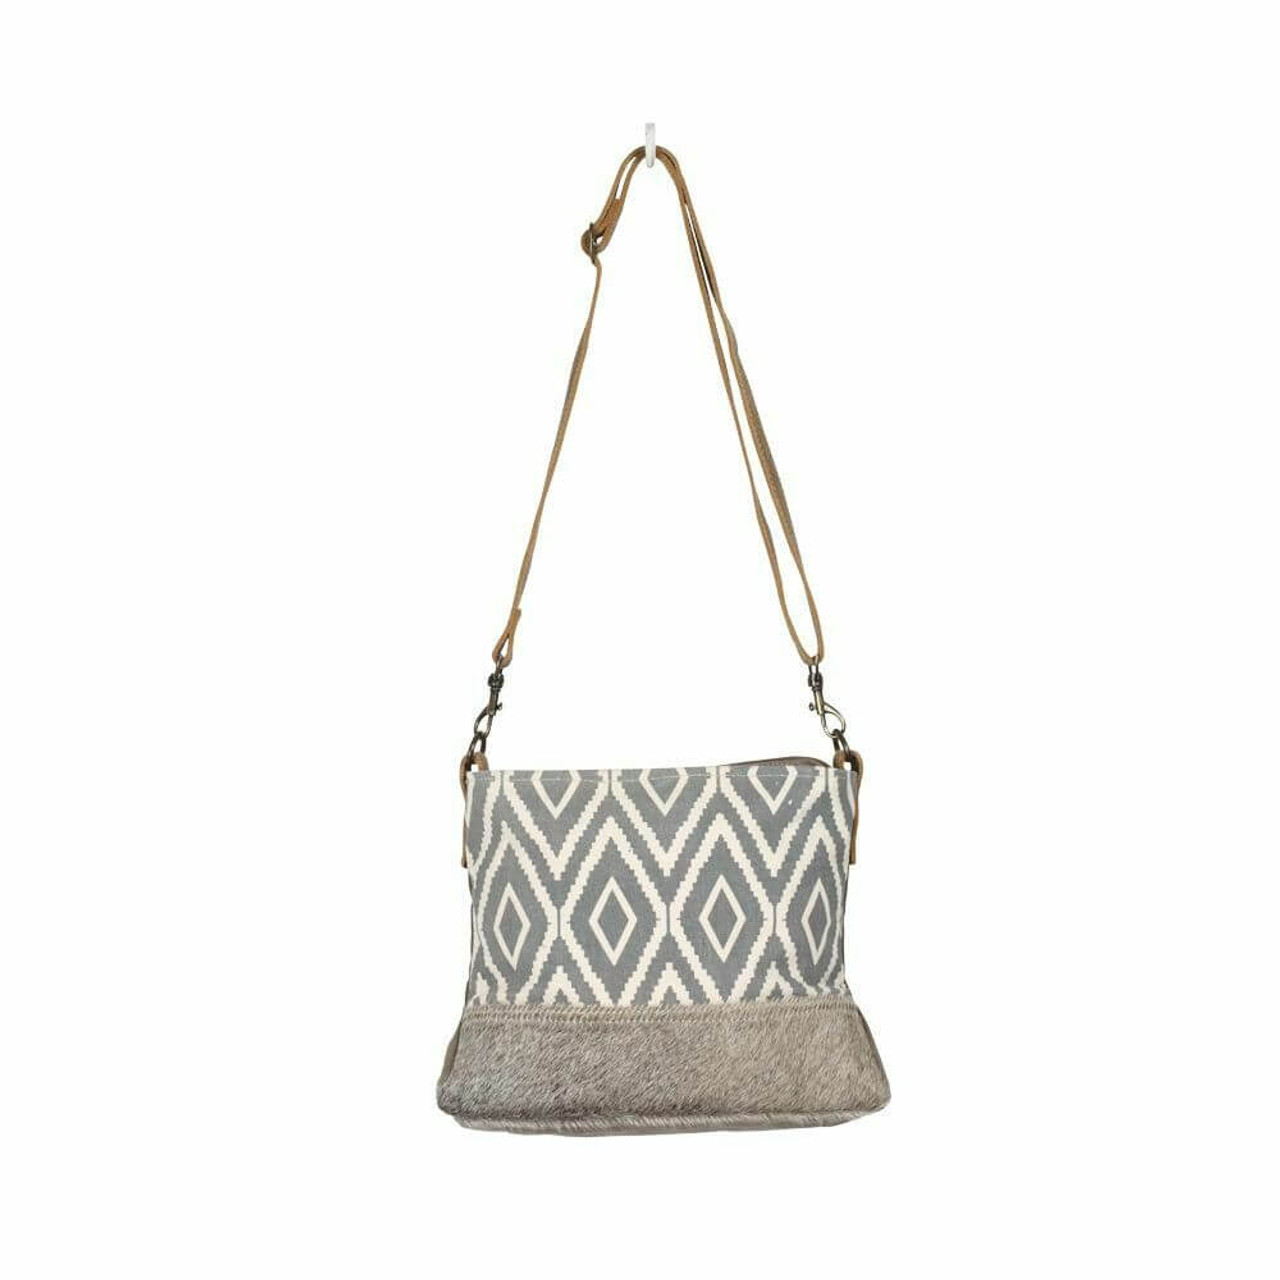 Great statement canvas bag that you can carry every day. Hairon accent at bottom of front; adjustable/removable strap gives options to carry on your shoulder or as a crossbody; zipper pocket at back; zipper close at top; interior is fully lined and has one zipper pocket and two slip pockets